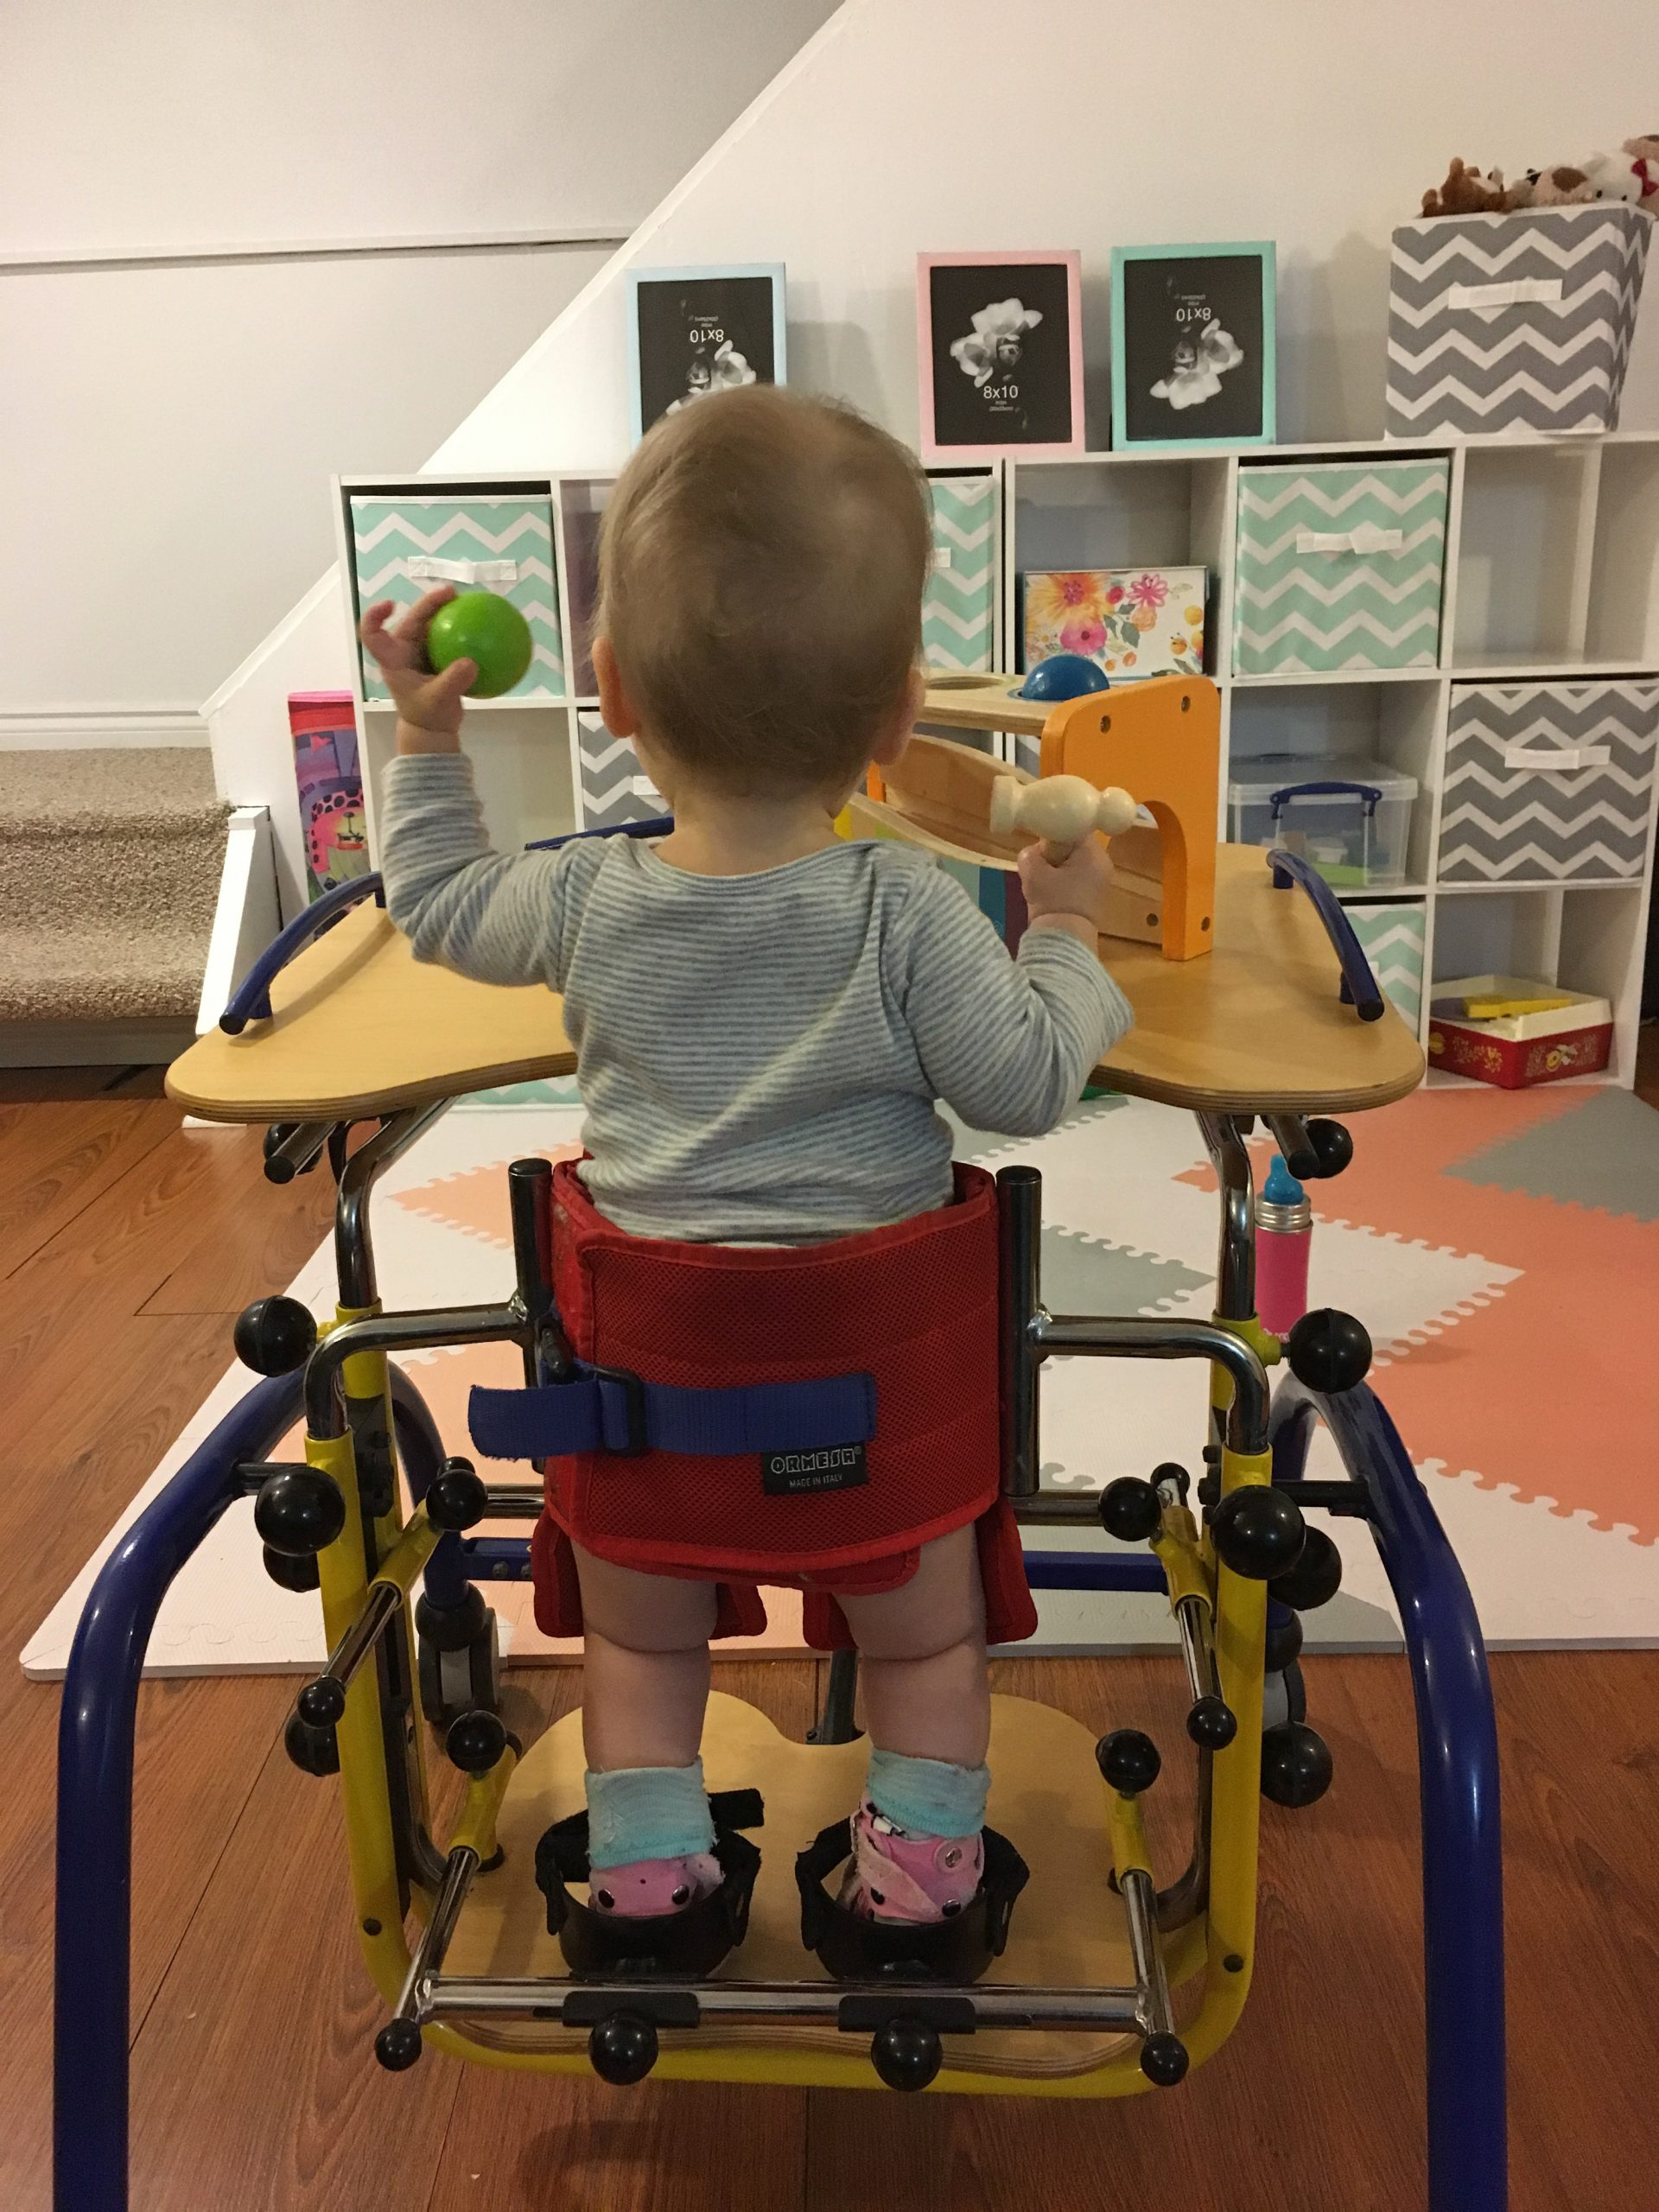 Child in a mobility device playing at a table.